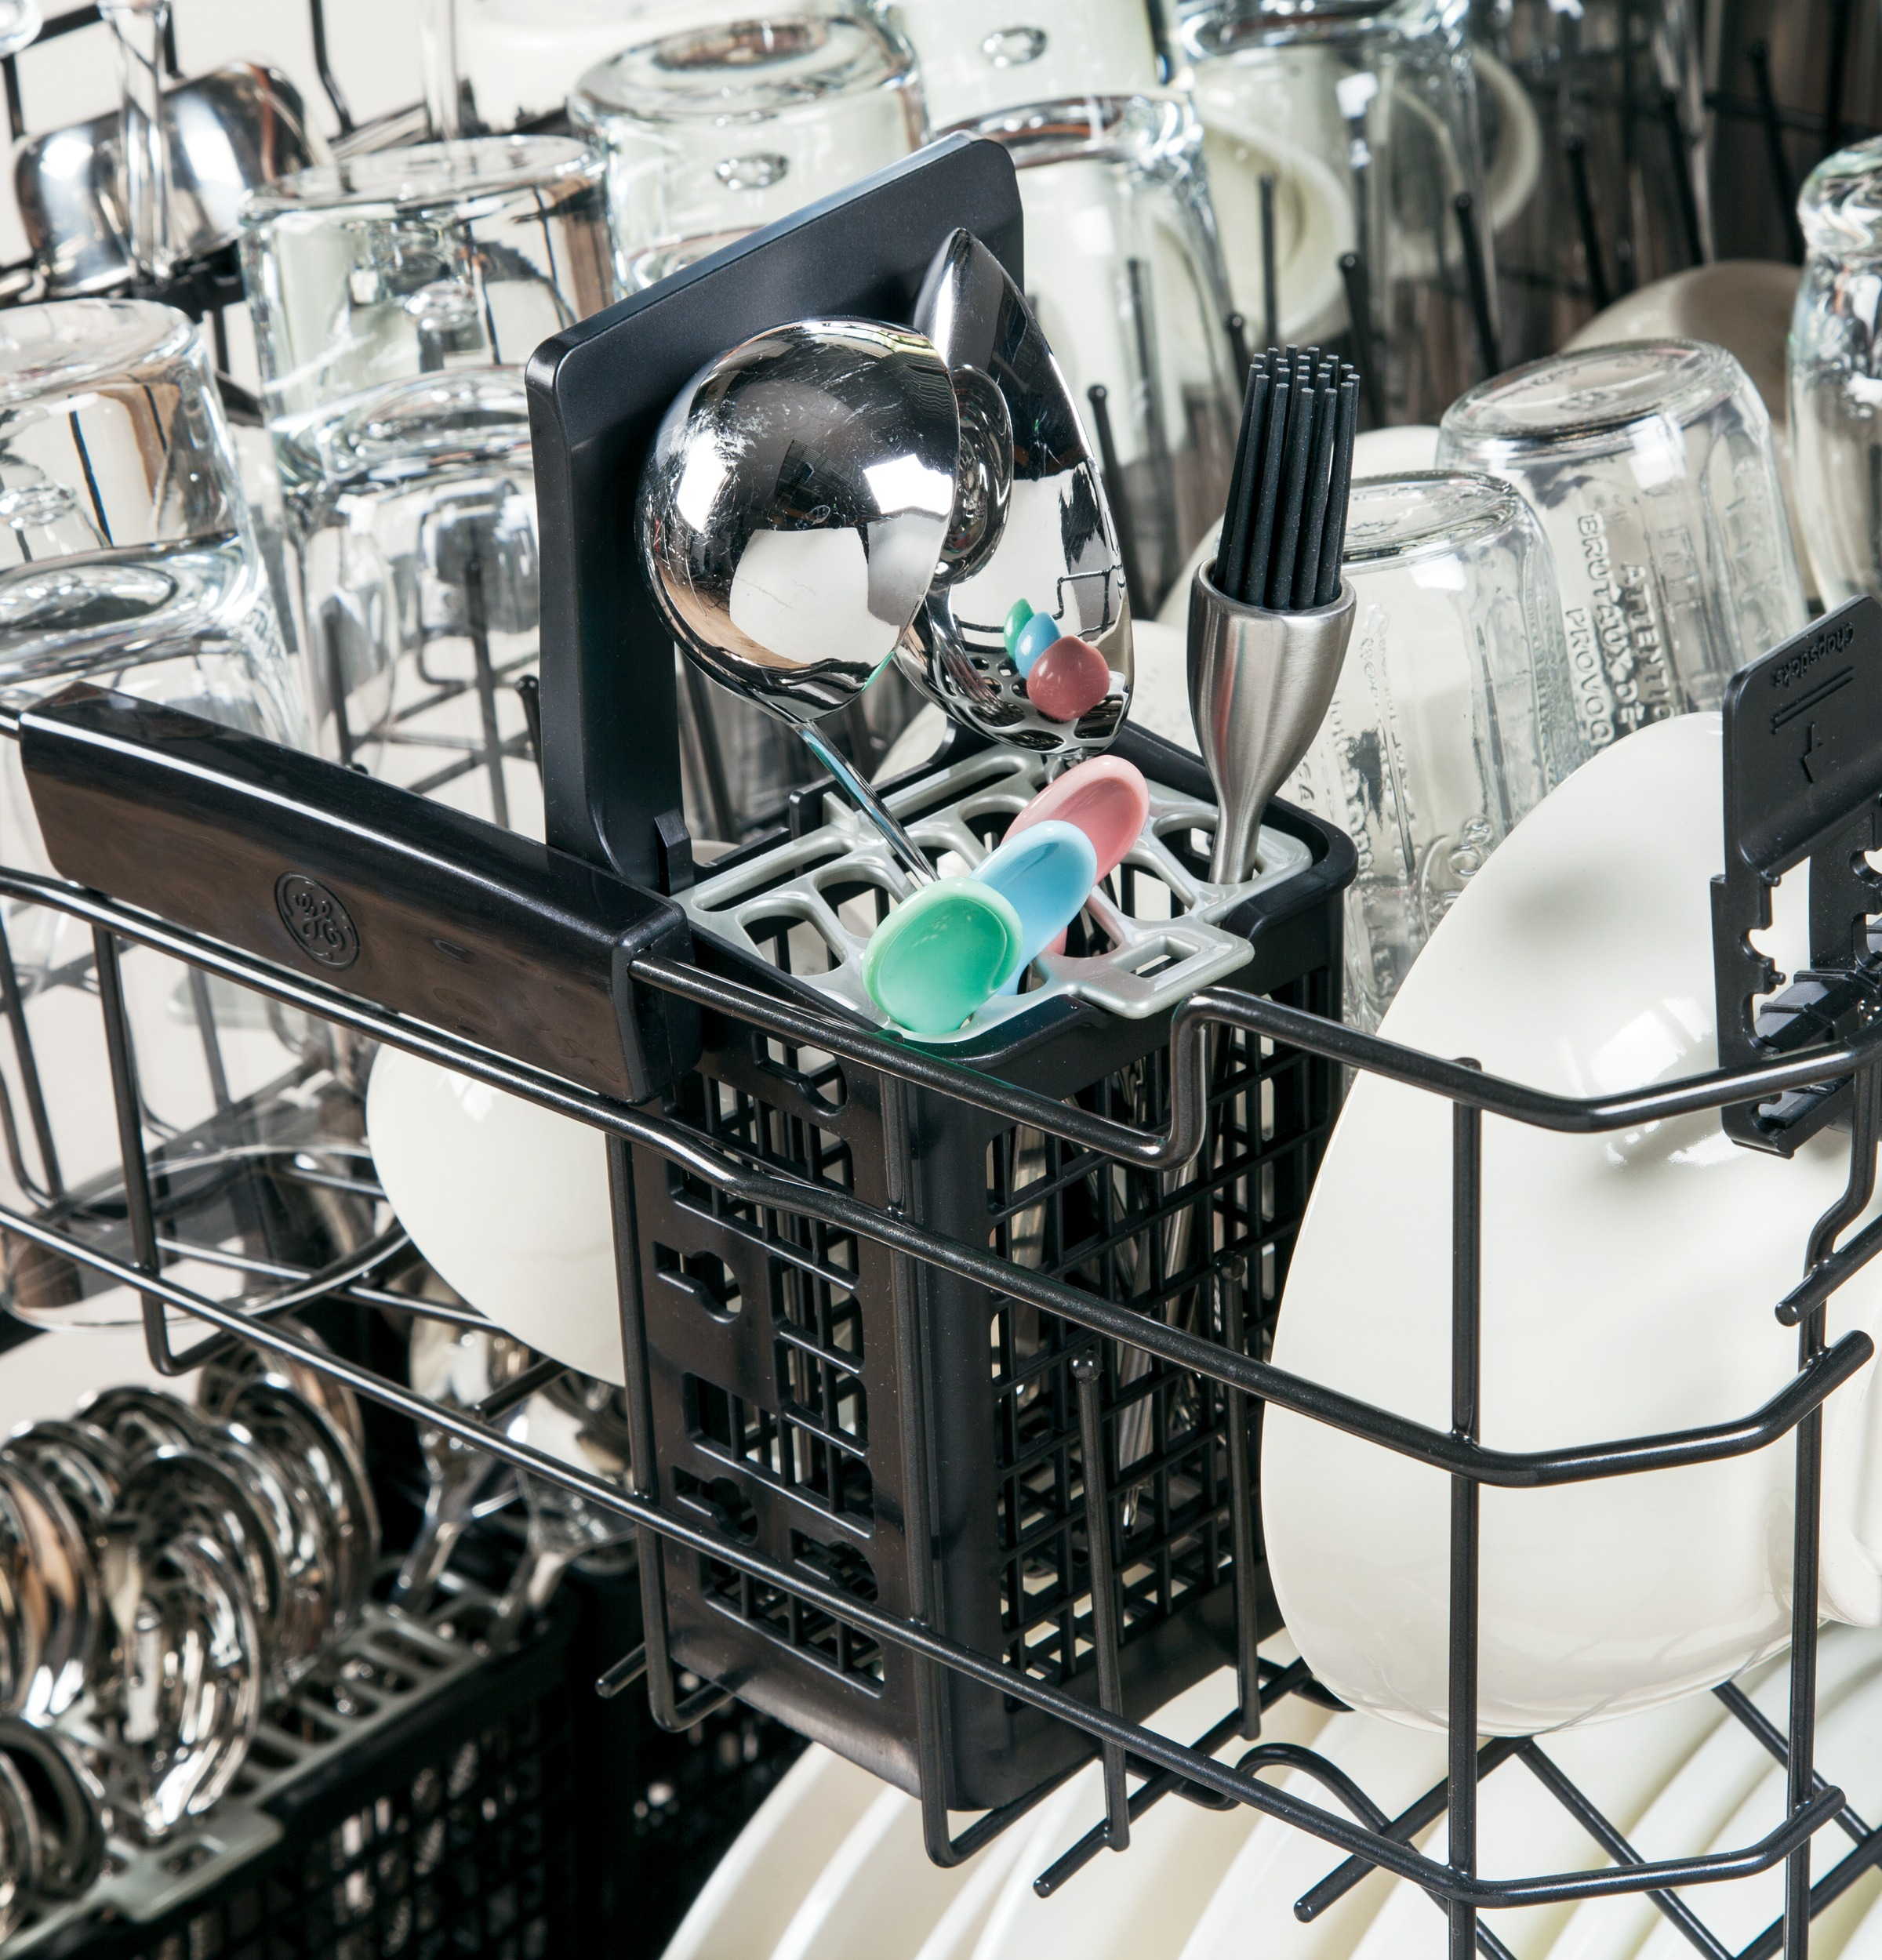 Ge Stainless Steel Interior Dishwasher With Hidden Controls Candy Washing Machine Wiring Diagram Product Image